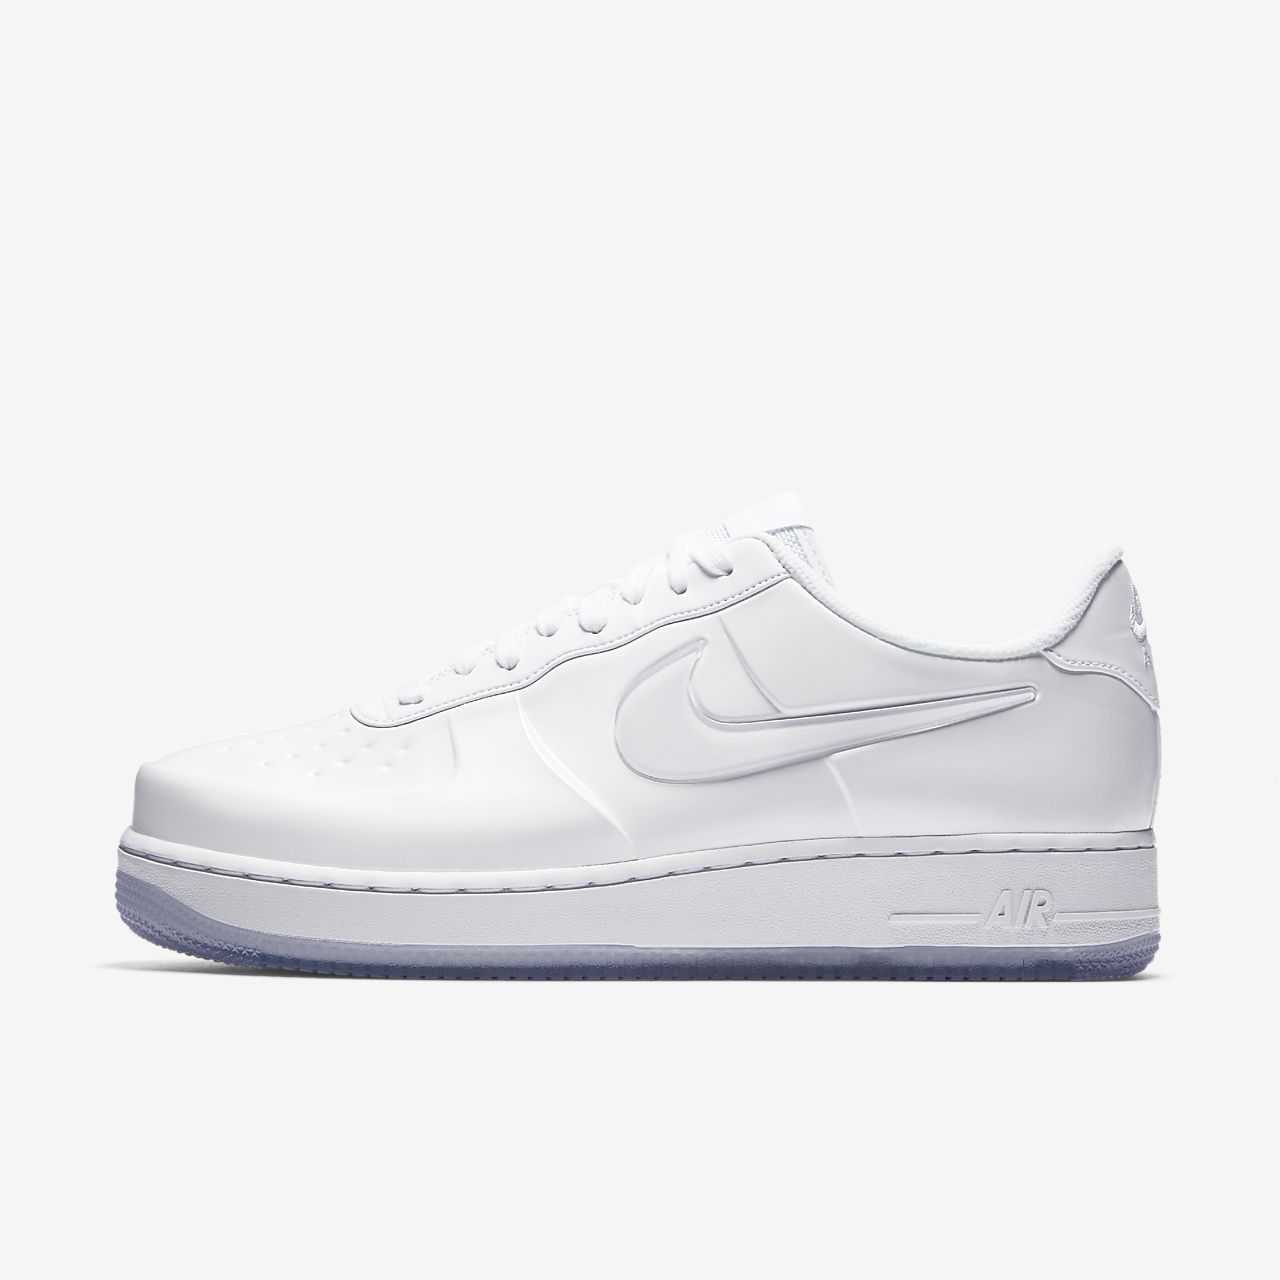 Chaussure Nike Air Force 1 Foamposite Pro Cup pour Homme